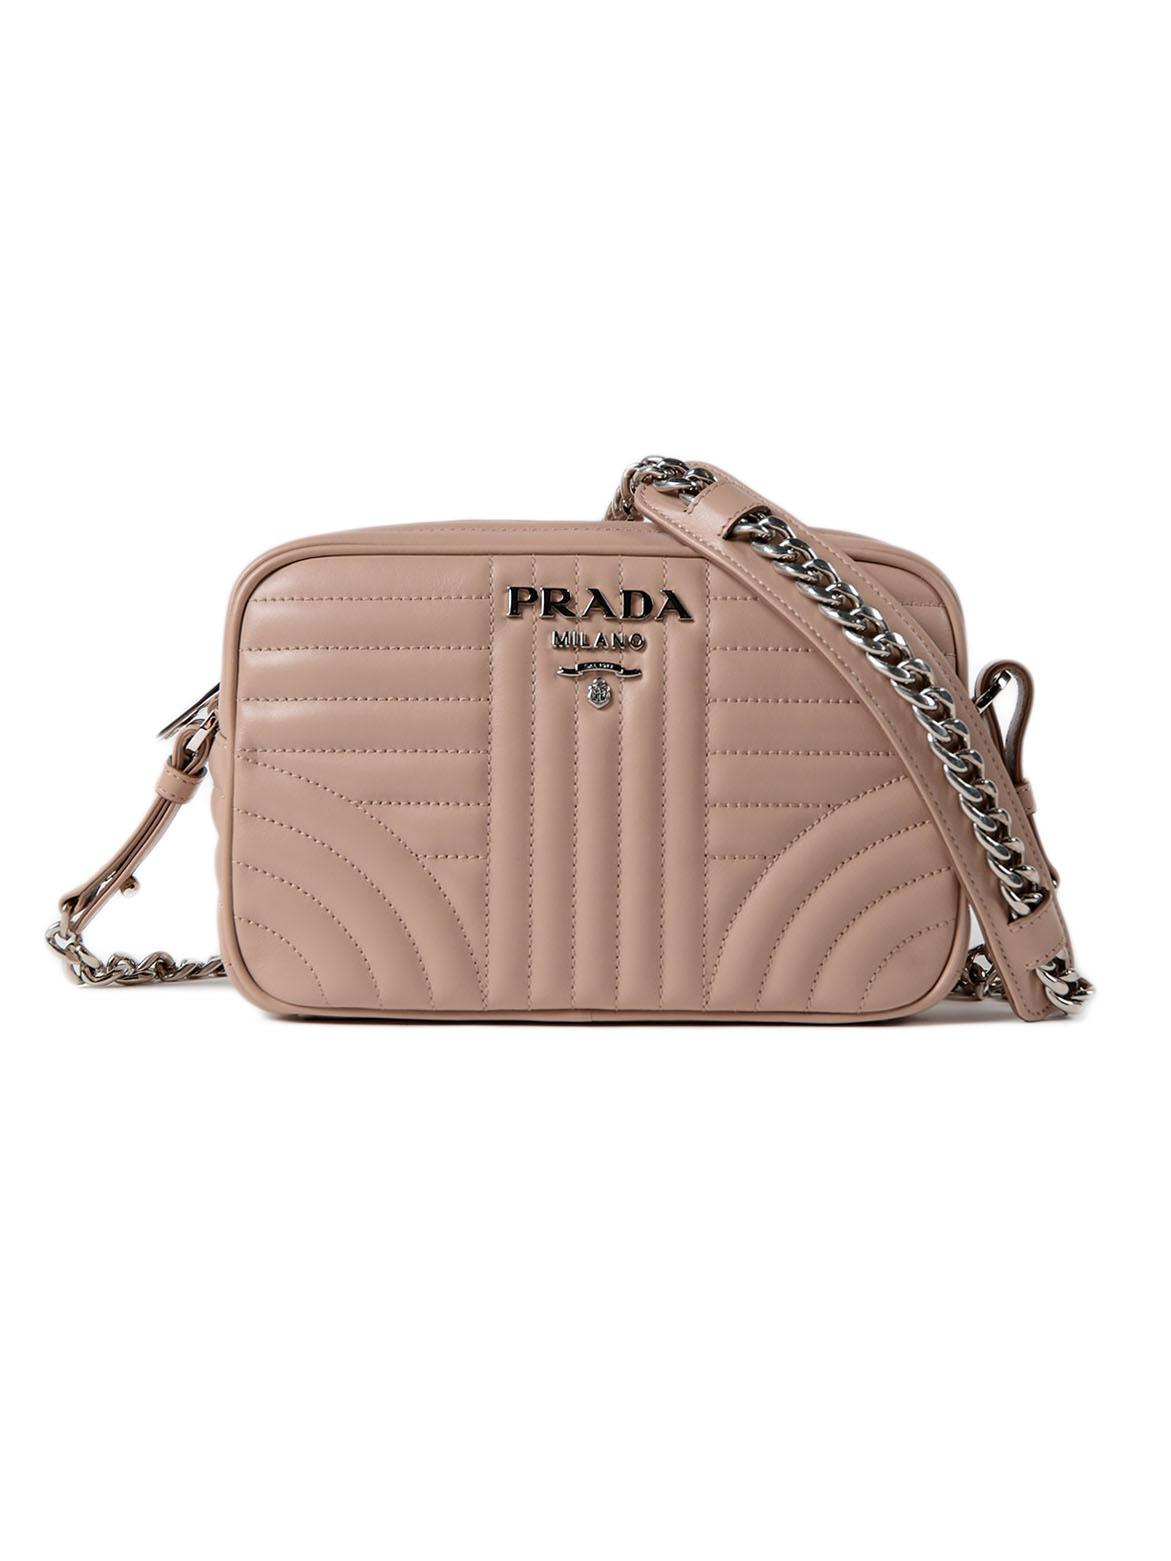 dba120c2e15b ... bag d96d5 authentic lyst prada soft calf impunture crossbody 541e3  f357c ...